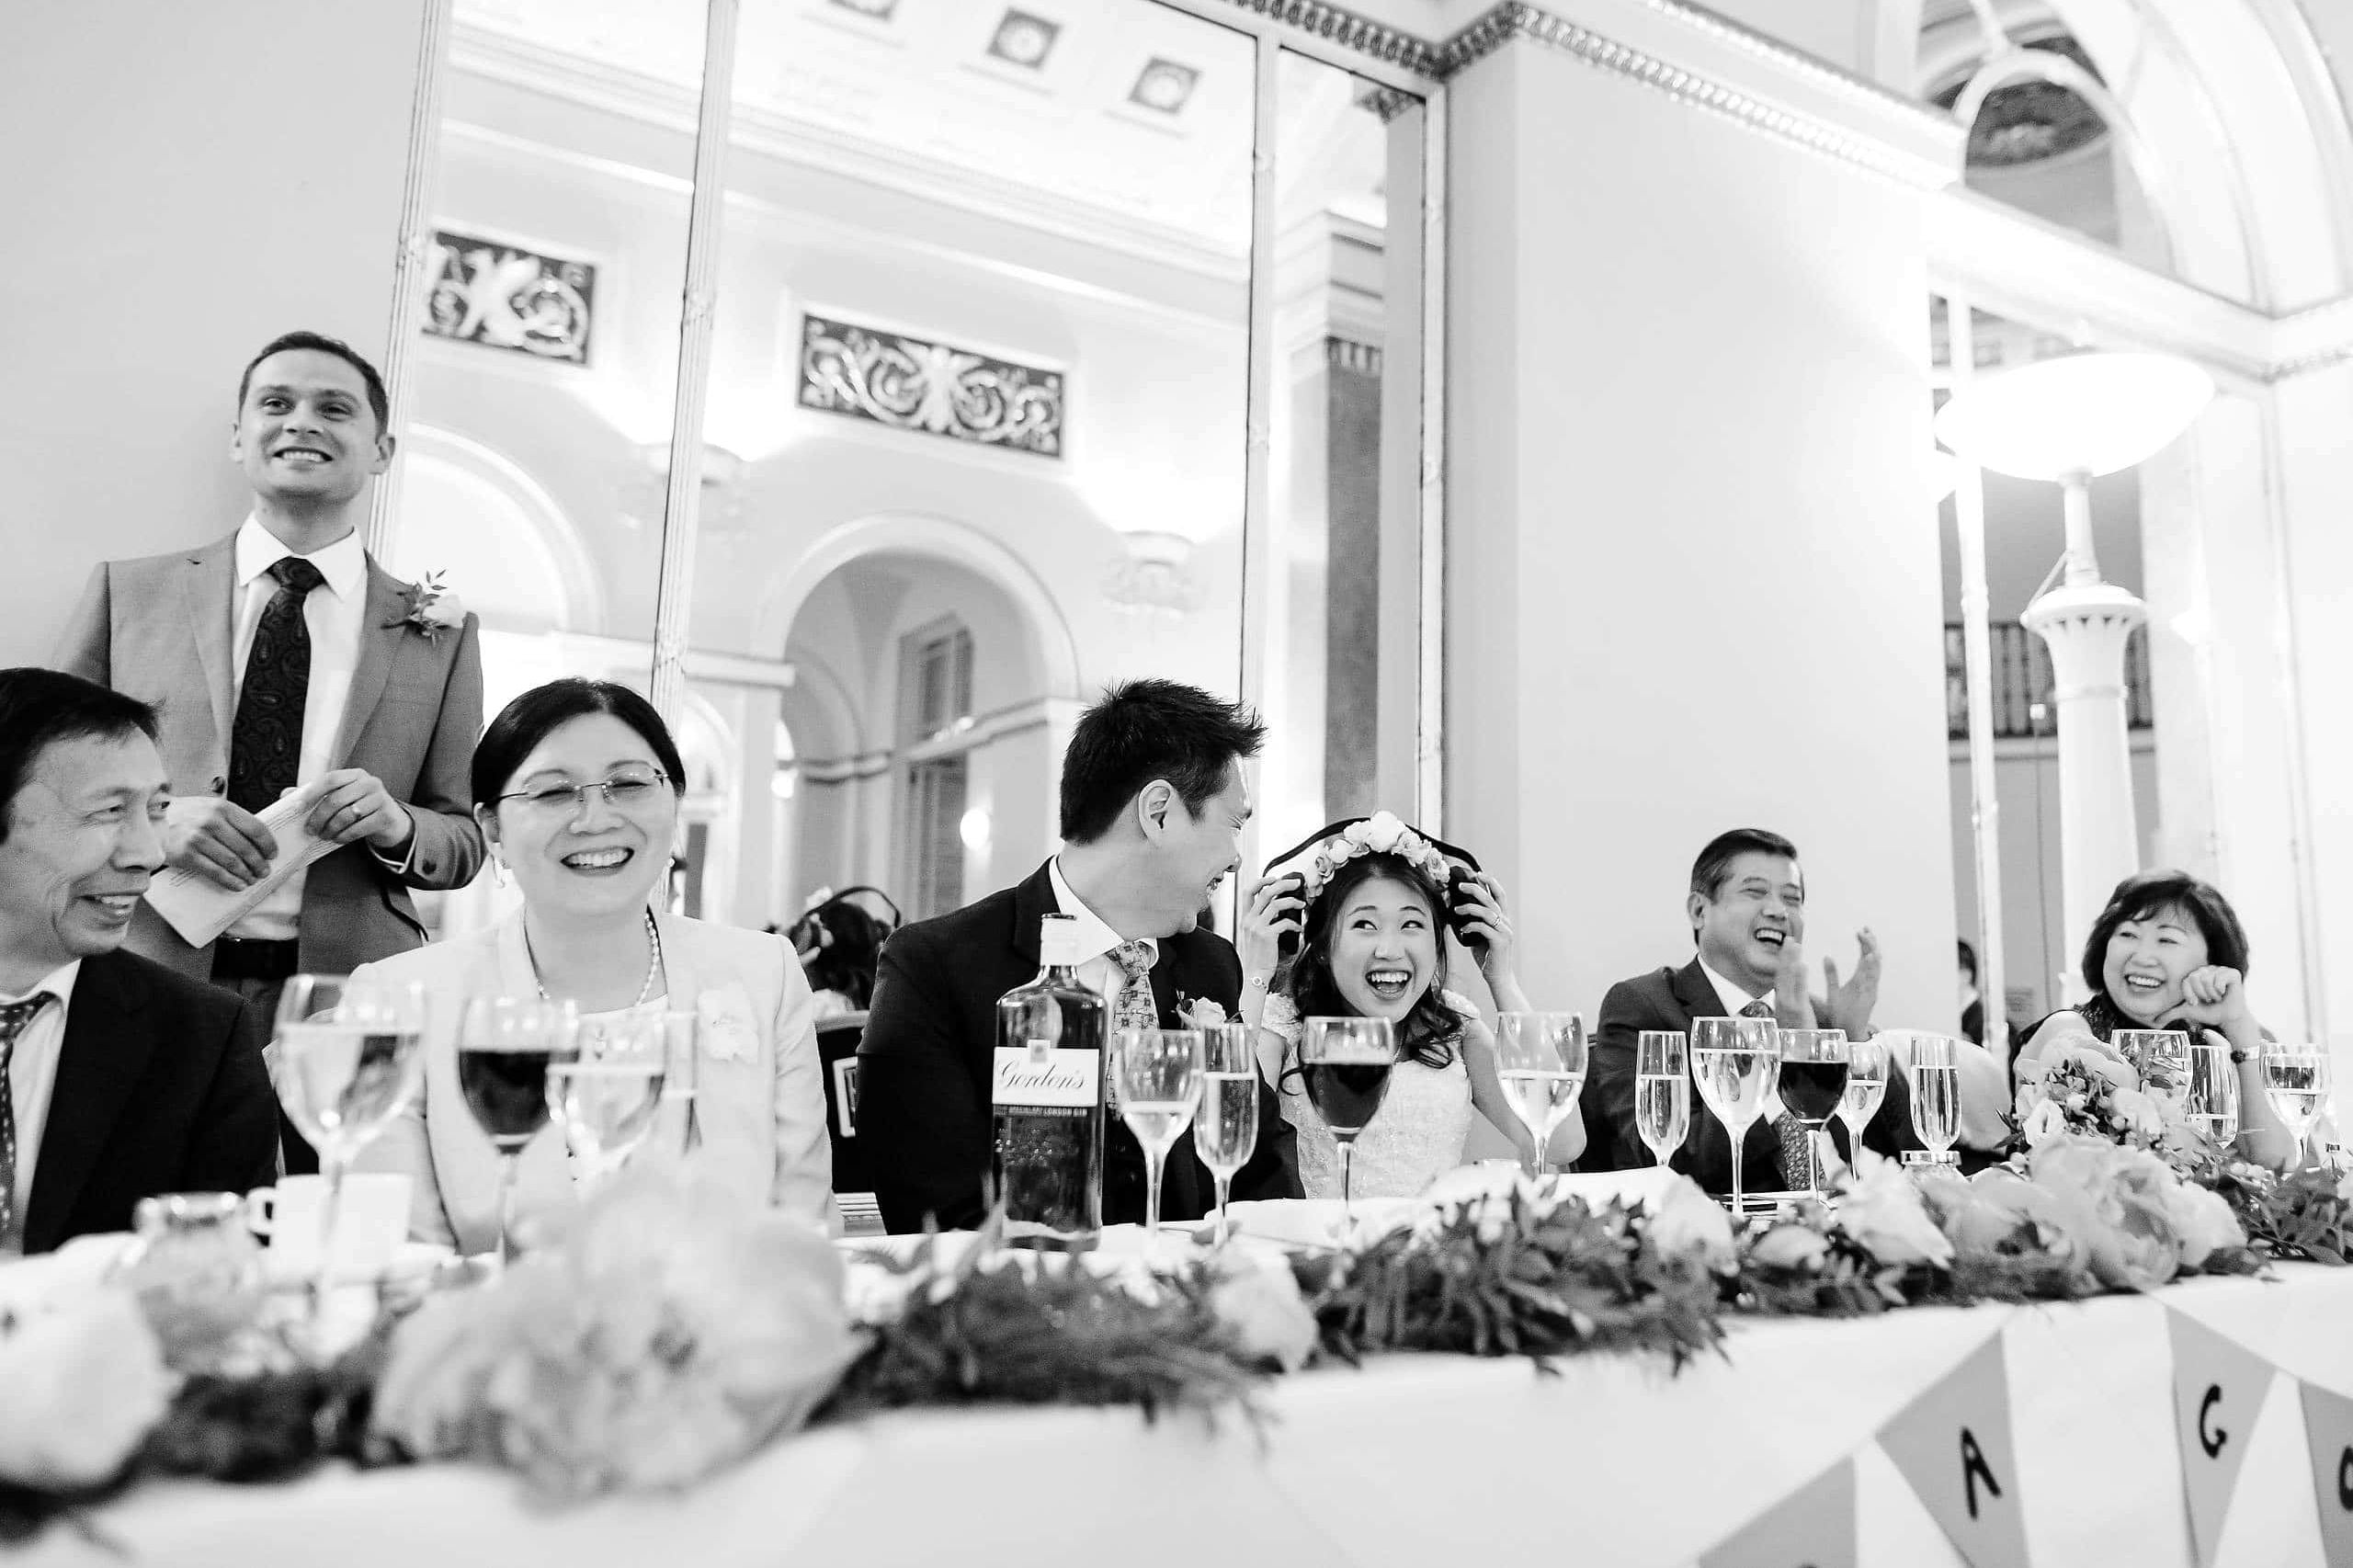 Wedding at the Lansdowne Club in London 1